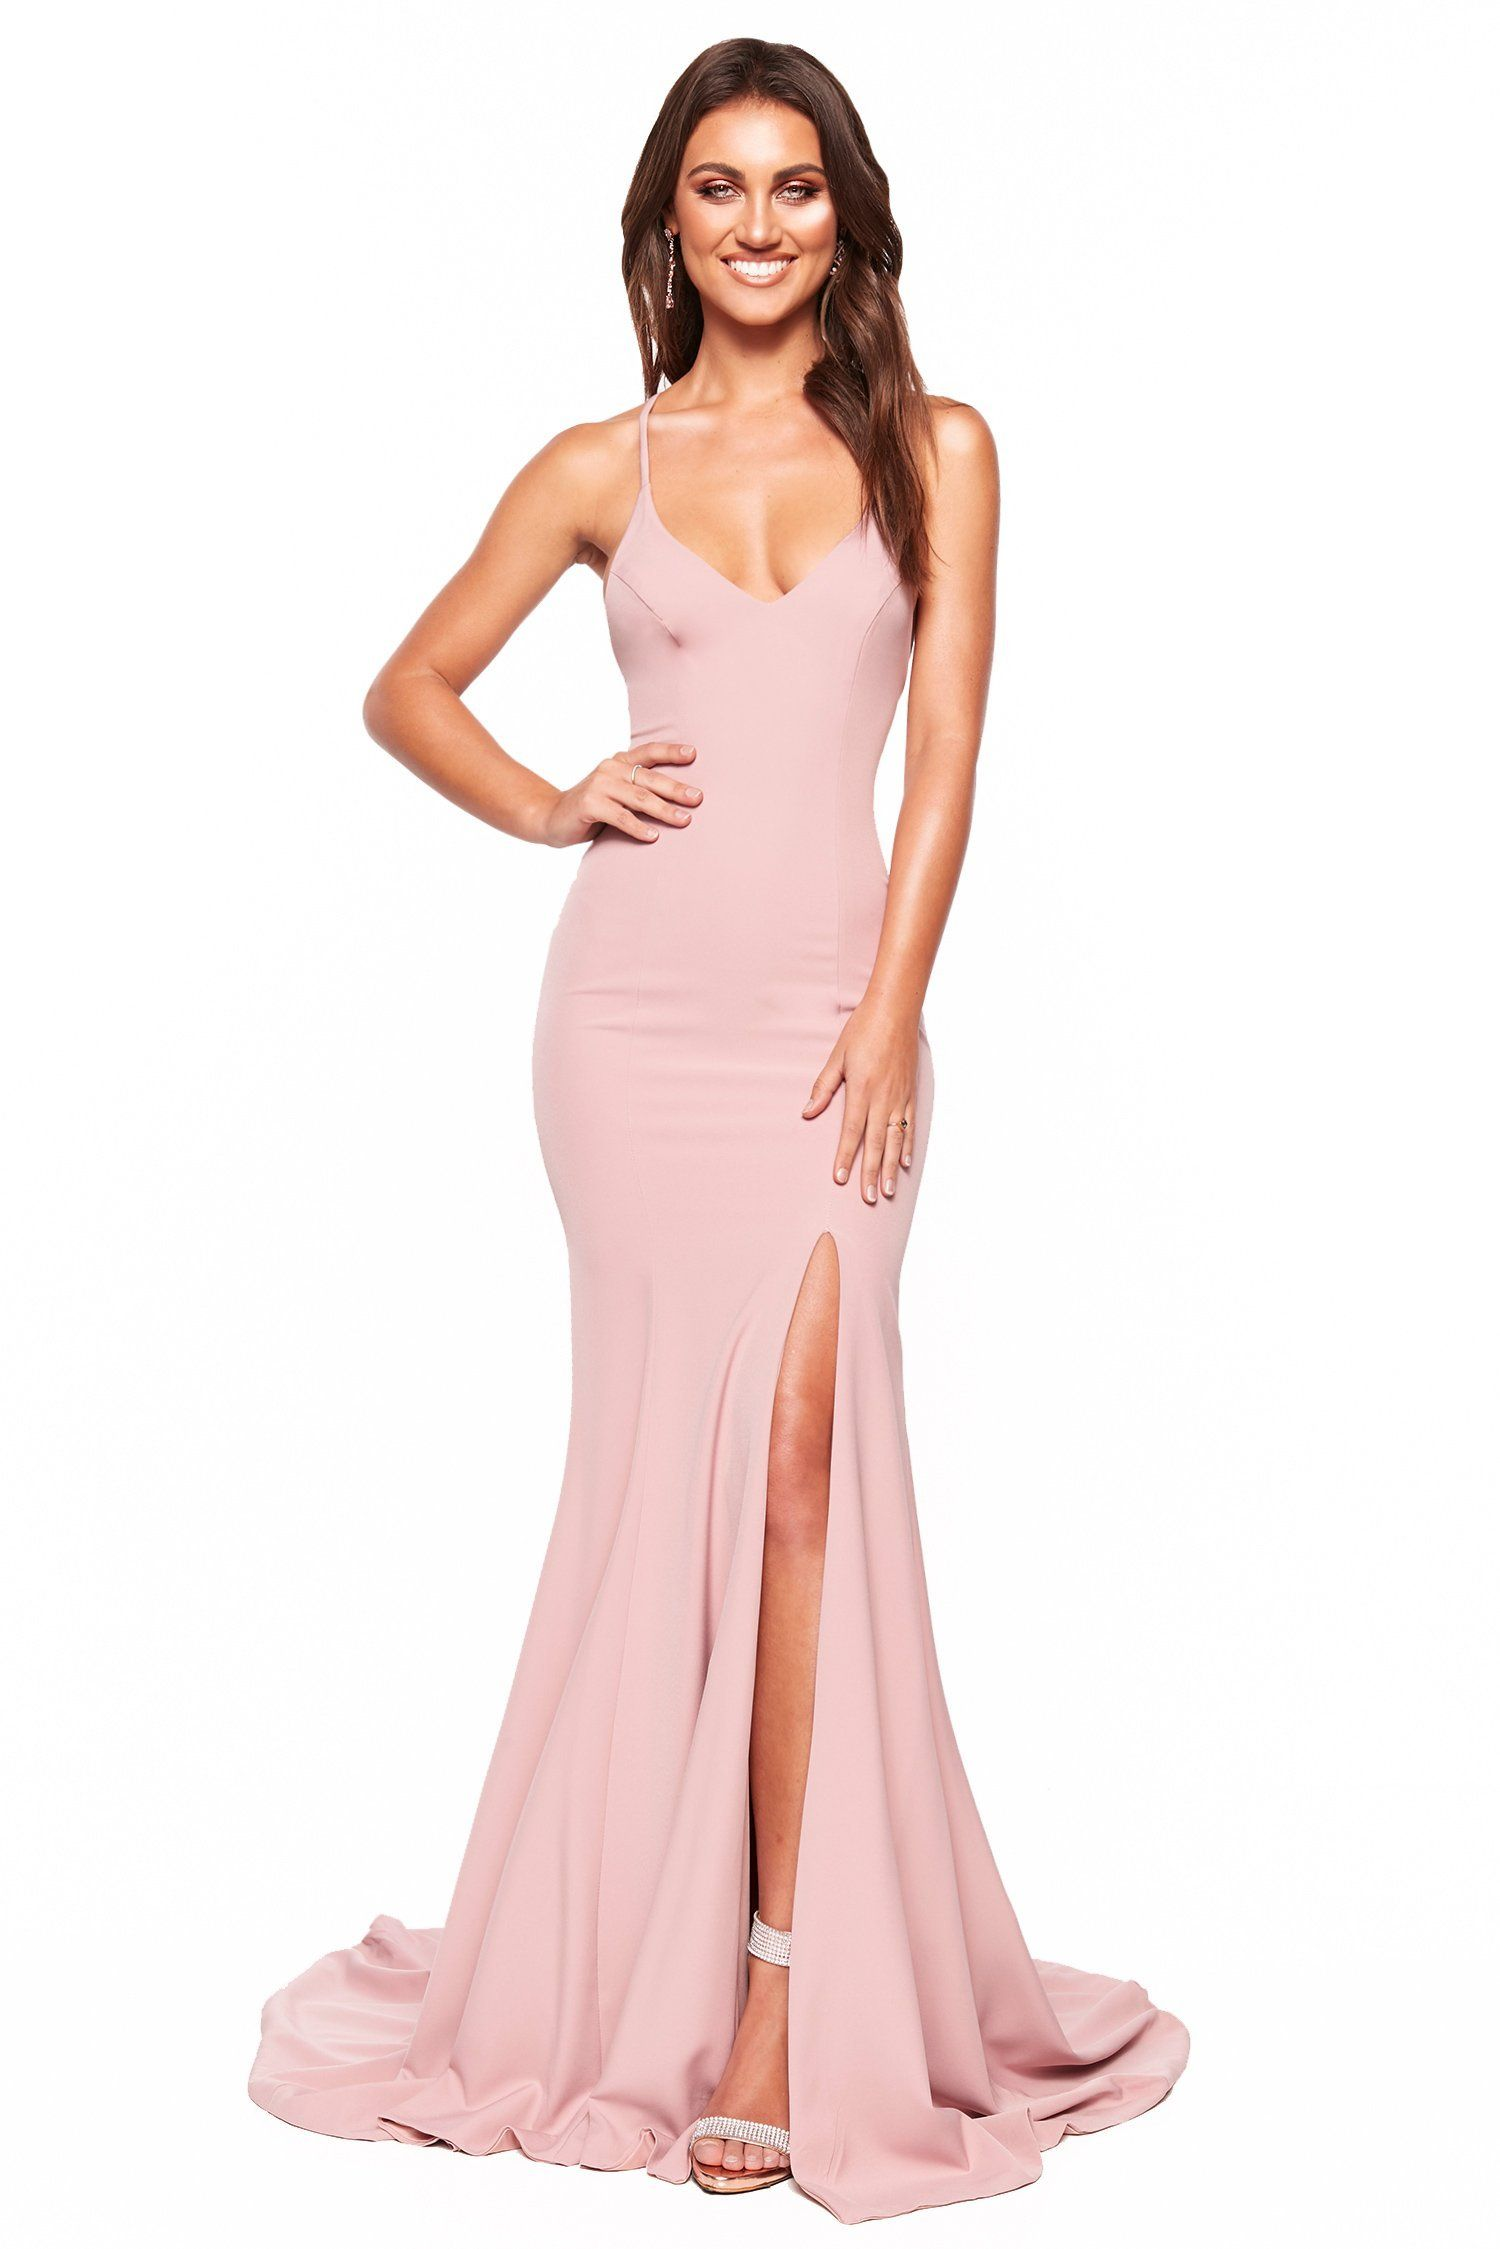 7f7bf153 A&N Luxe Emilie - Dusty Pink Gown with V-Neck, Lace-Up Back & Slit